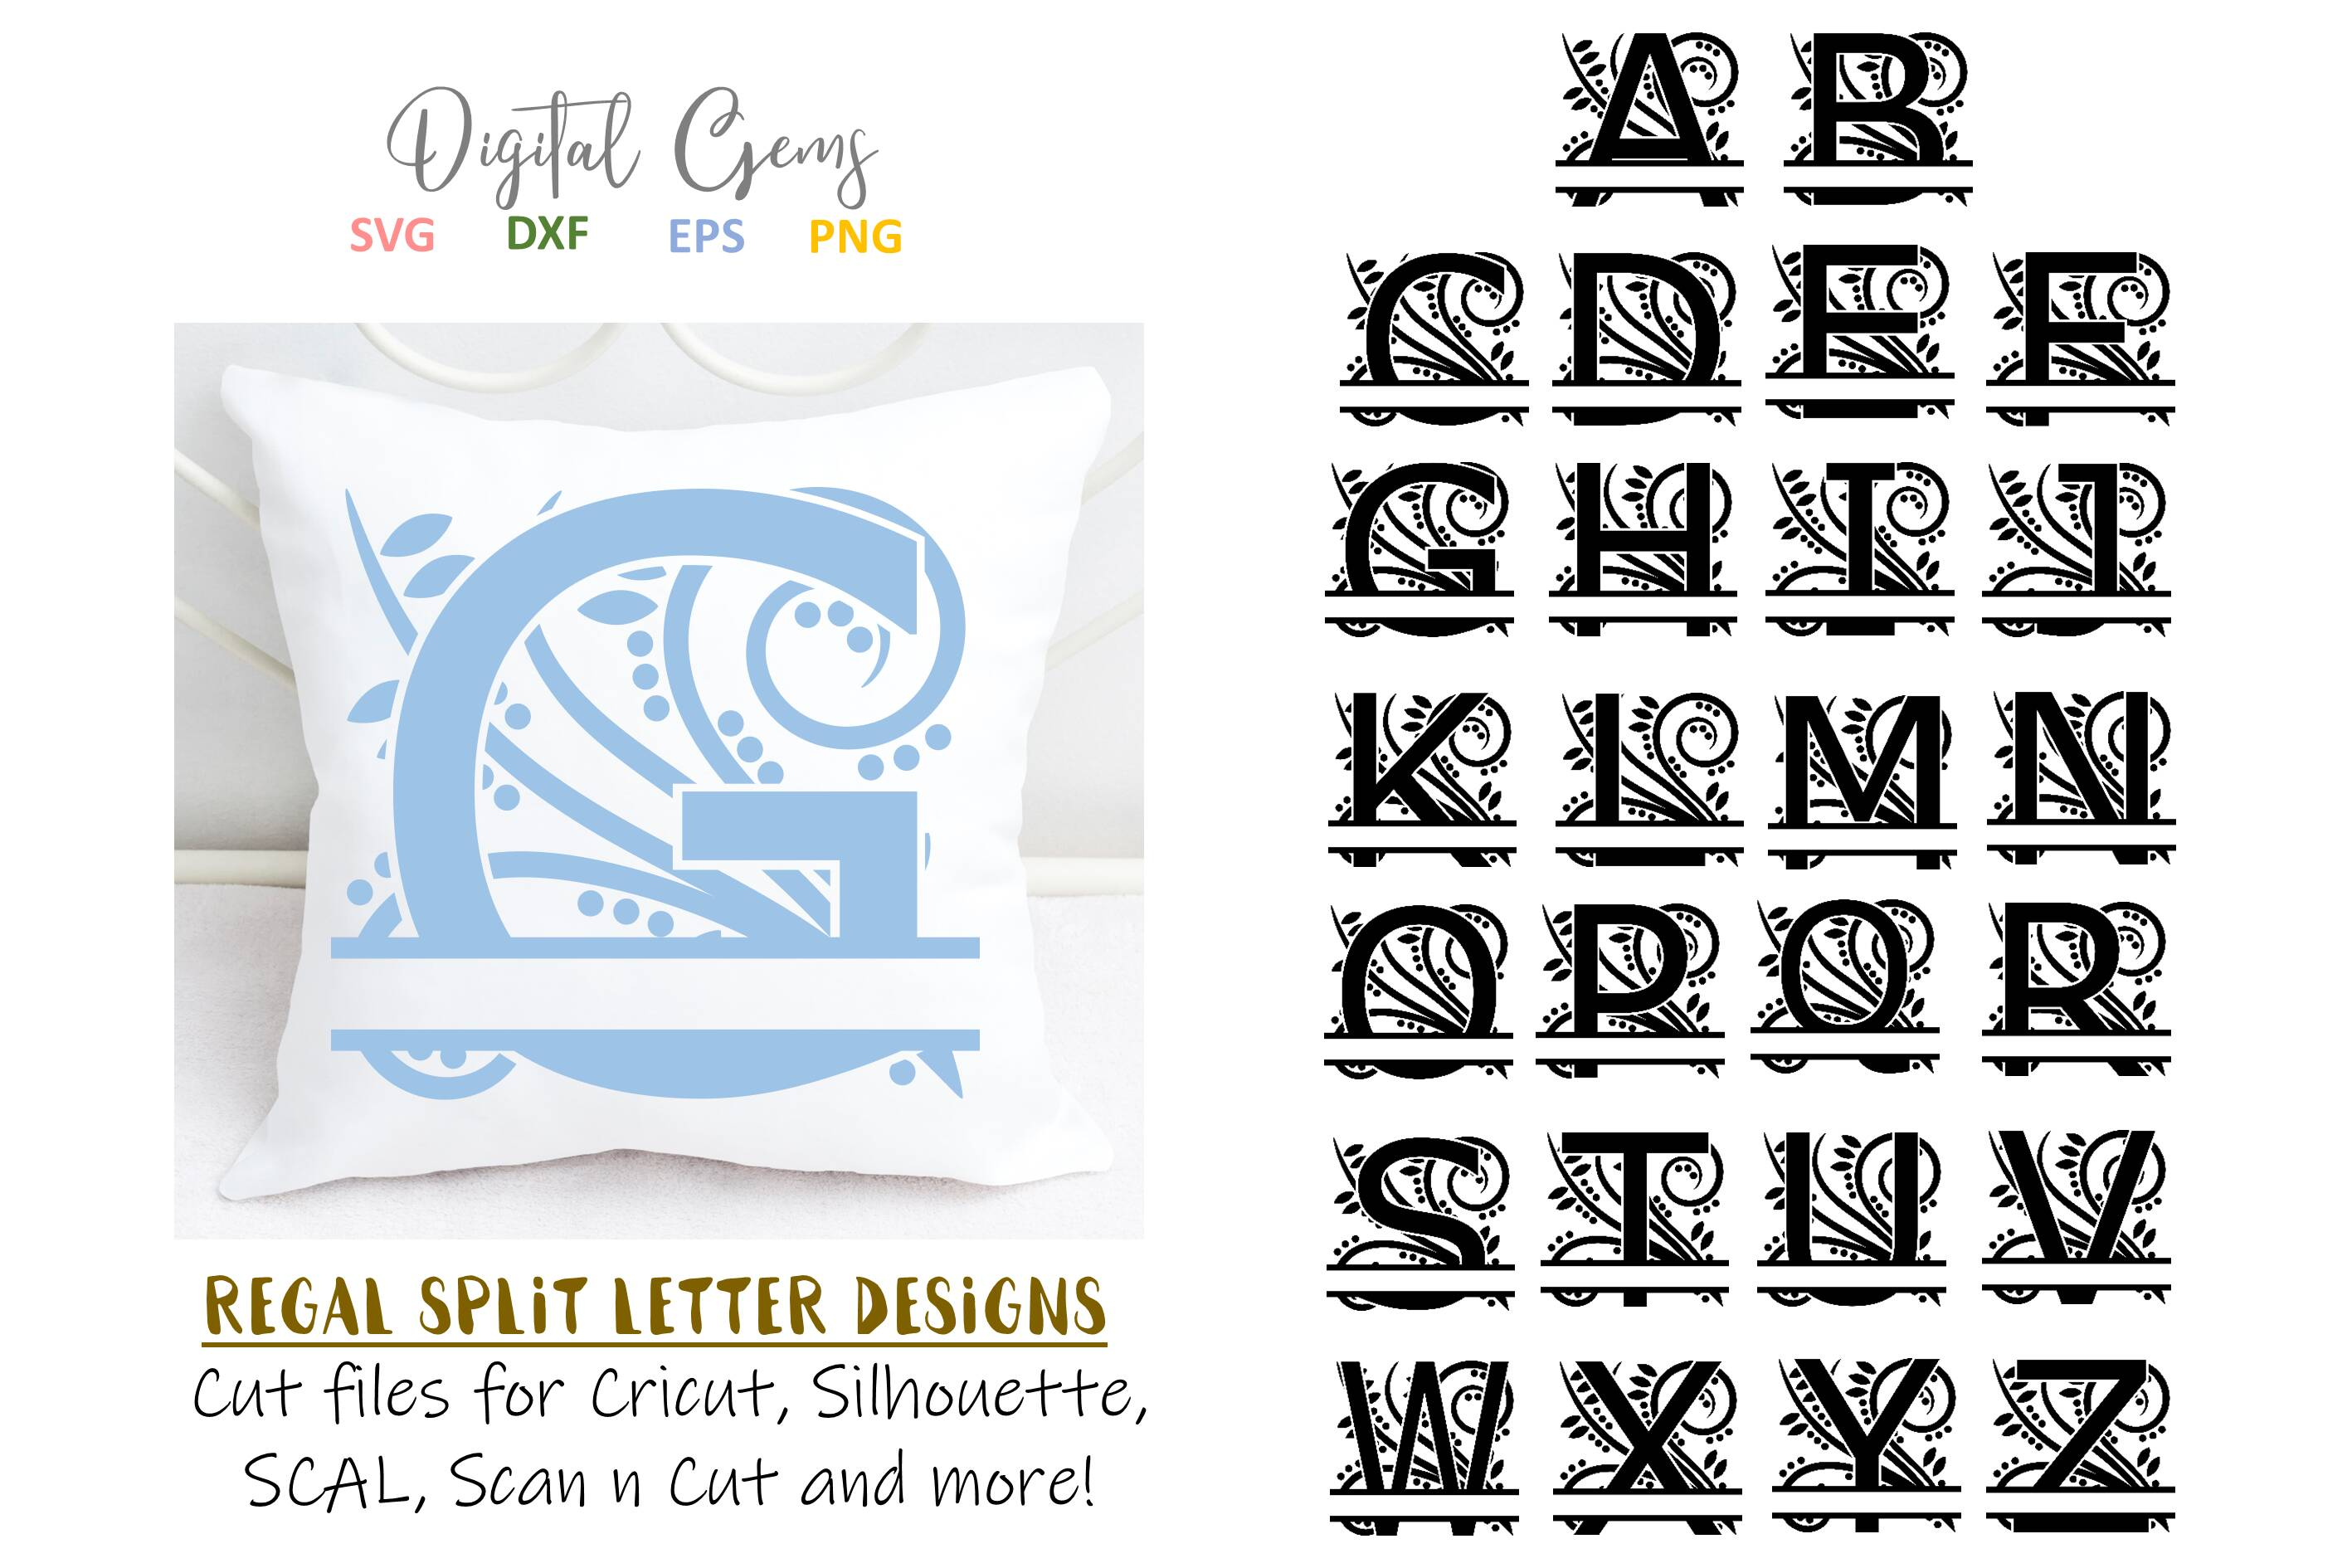 Download Free Split Alphabet Letter Designs Graphic By Digital Gems Creative for Cricut Explore, Silhouette and other cutting machines.